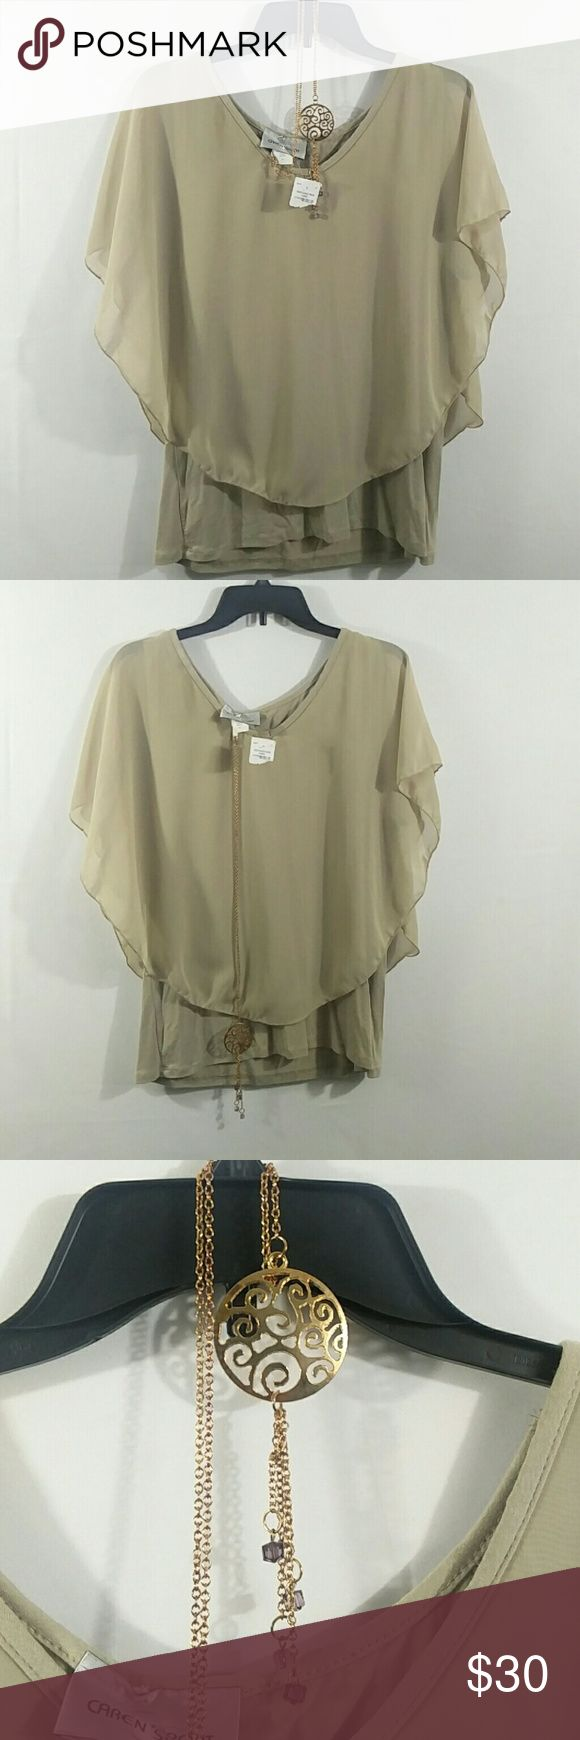 """Caren Sport Plus Size 3X Camel Cape Top USA You are looking at a new with tag women's Caren Sport made in USA Sheer Cape Blouse in Size 3X, comes with the Necklace. 69% Polyester 35%Rayon,5% Spandex. Length~22.5"""" Armpit to armpit~22"""" Please look at pictures and ask questions before buying. Thanks for looking. Caren Sport Tops"""